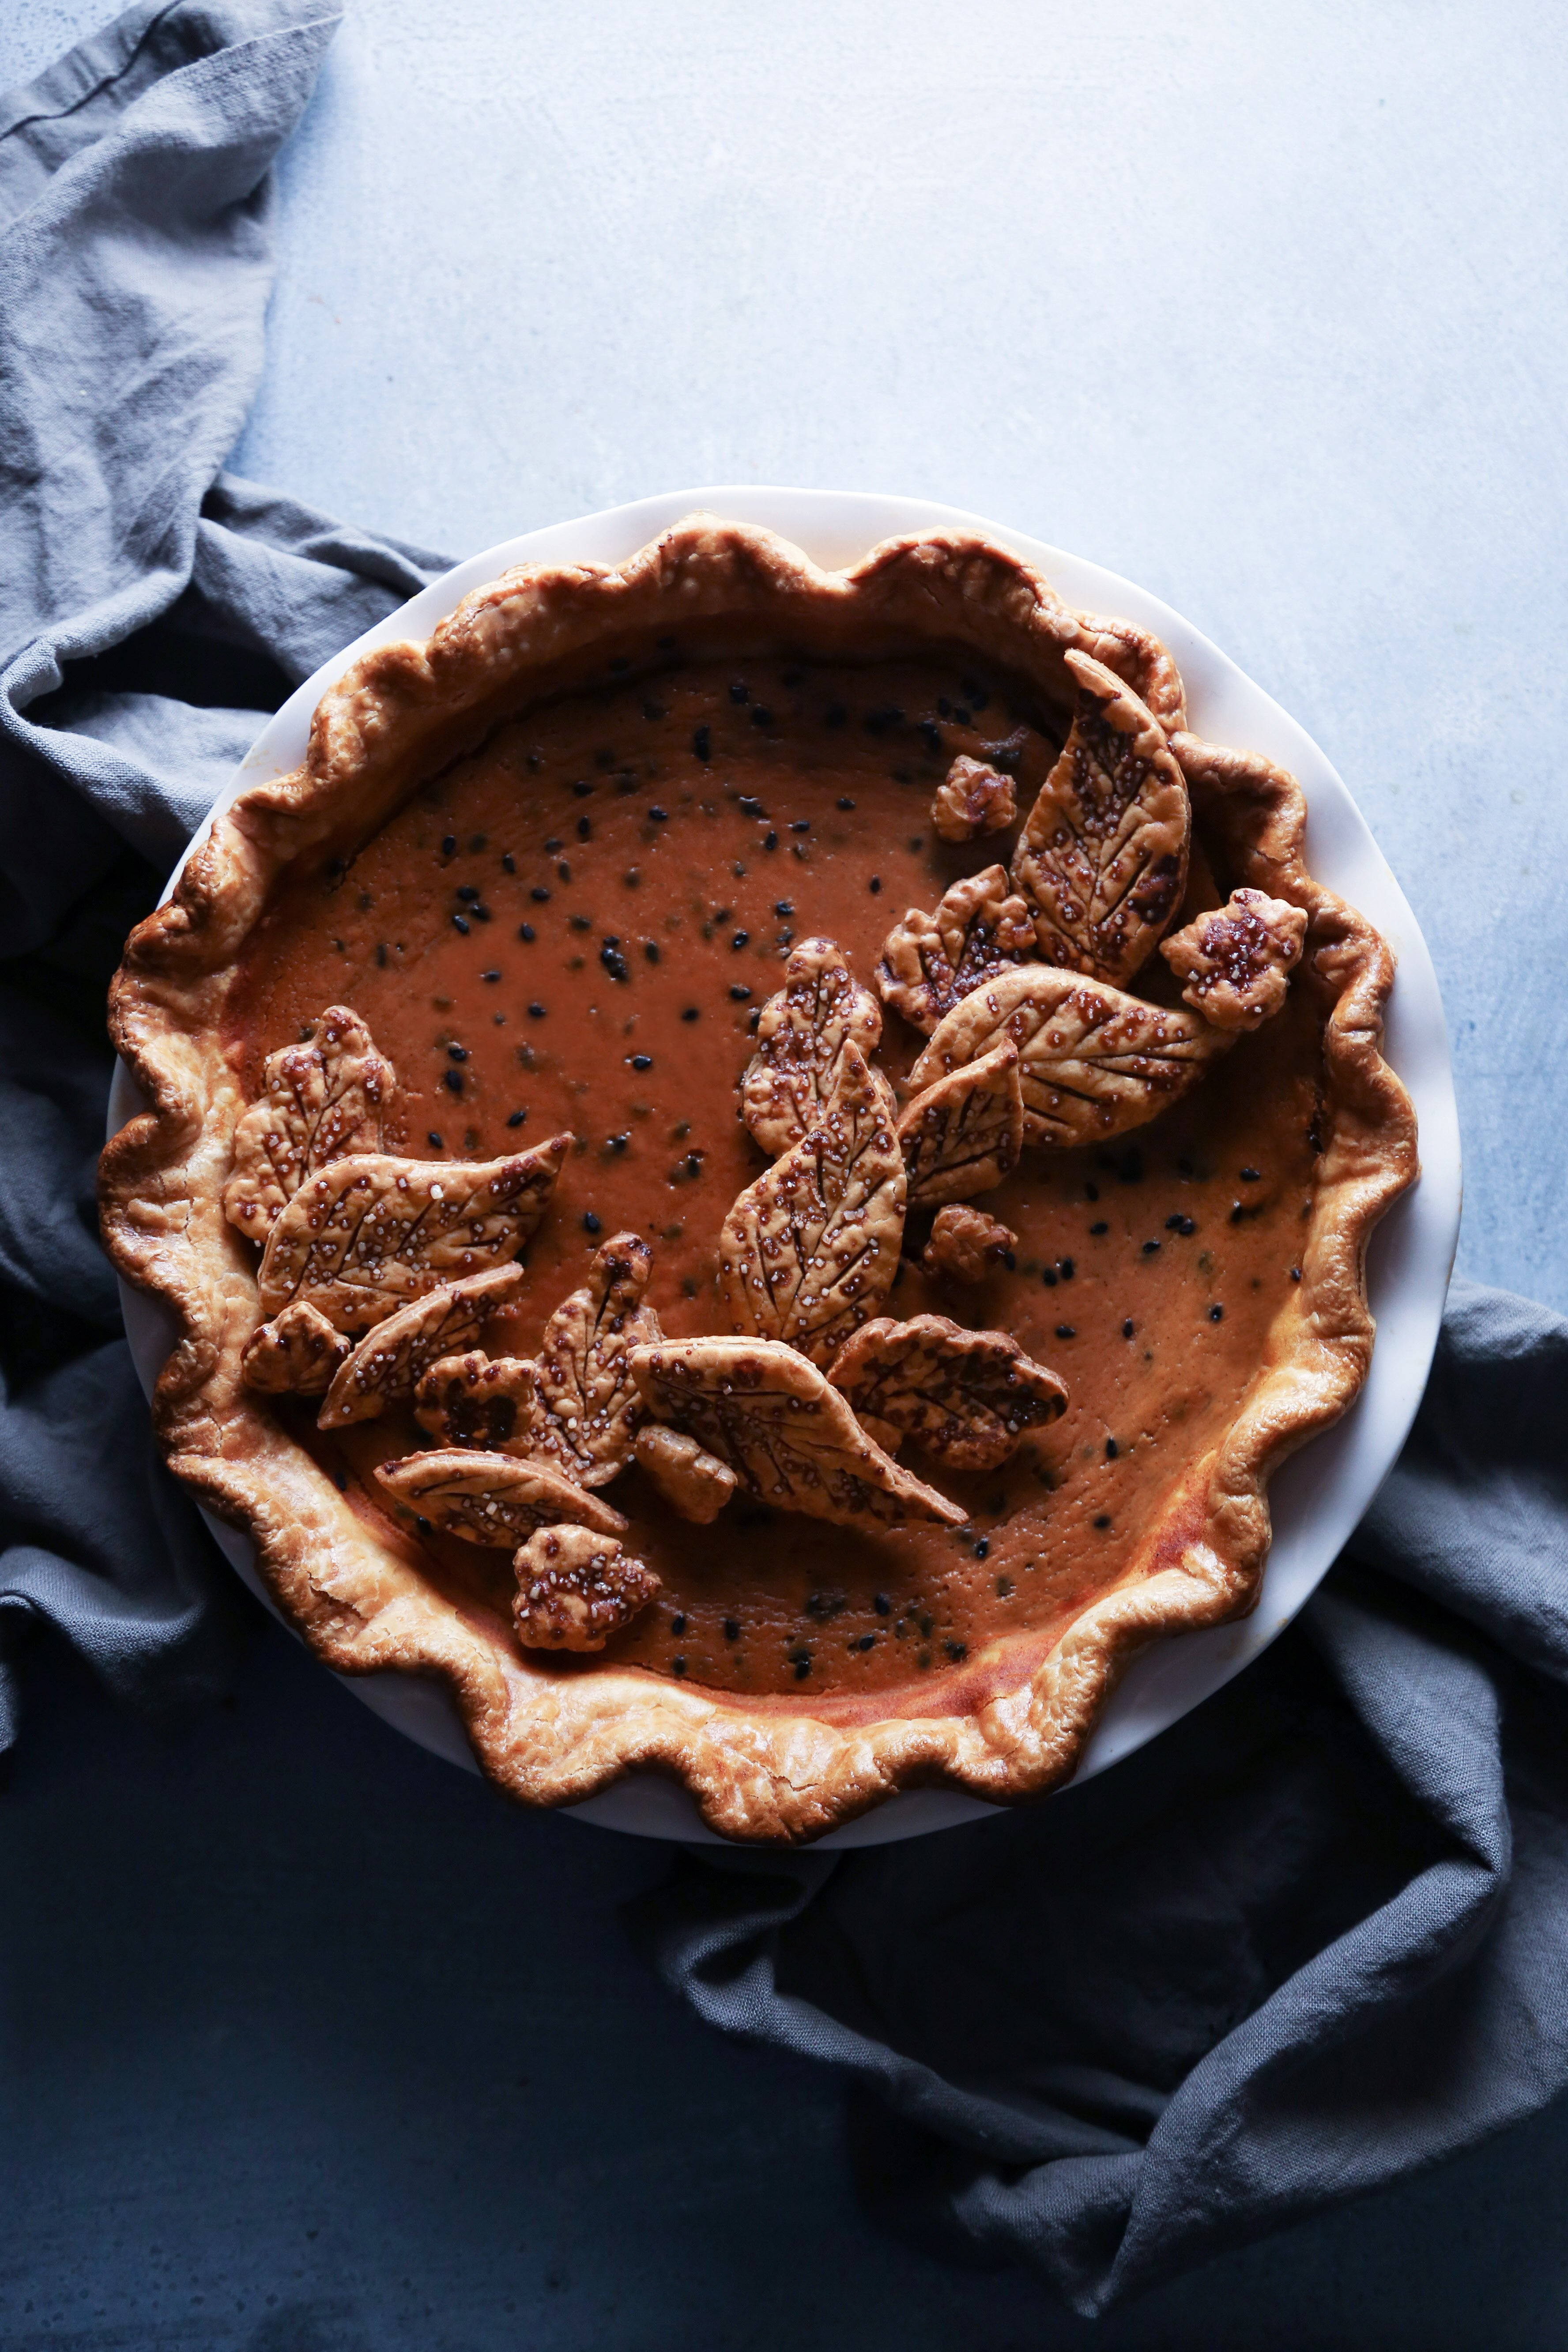 Pumpkin Pie with Black Sesame | Free of dairy and refined sugar. Gluten-free crust recipe included.